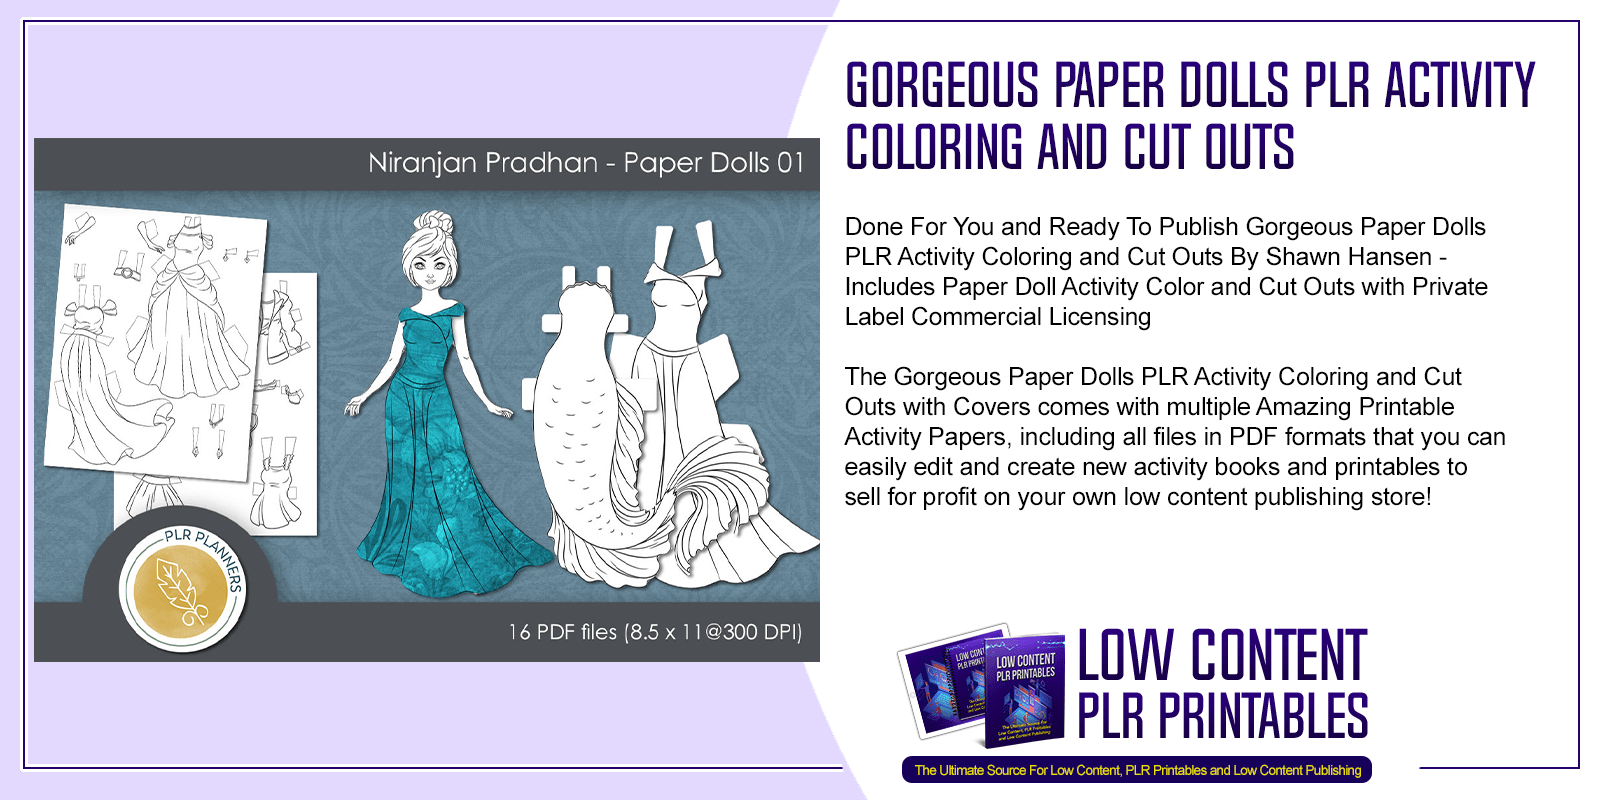 Gorgeous Paper Dolls PLR Activity Coloring and Cut Outs